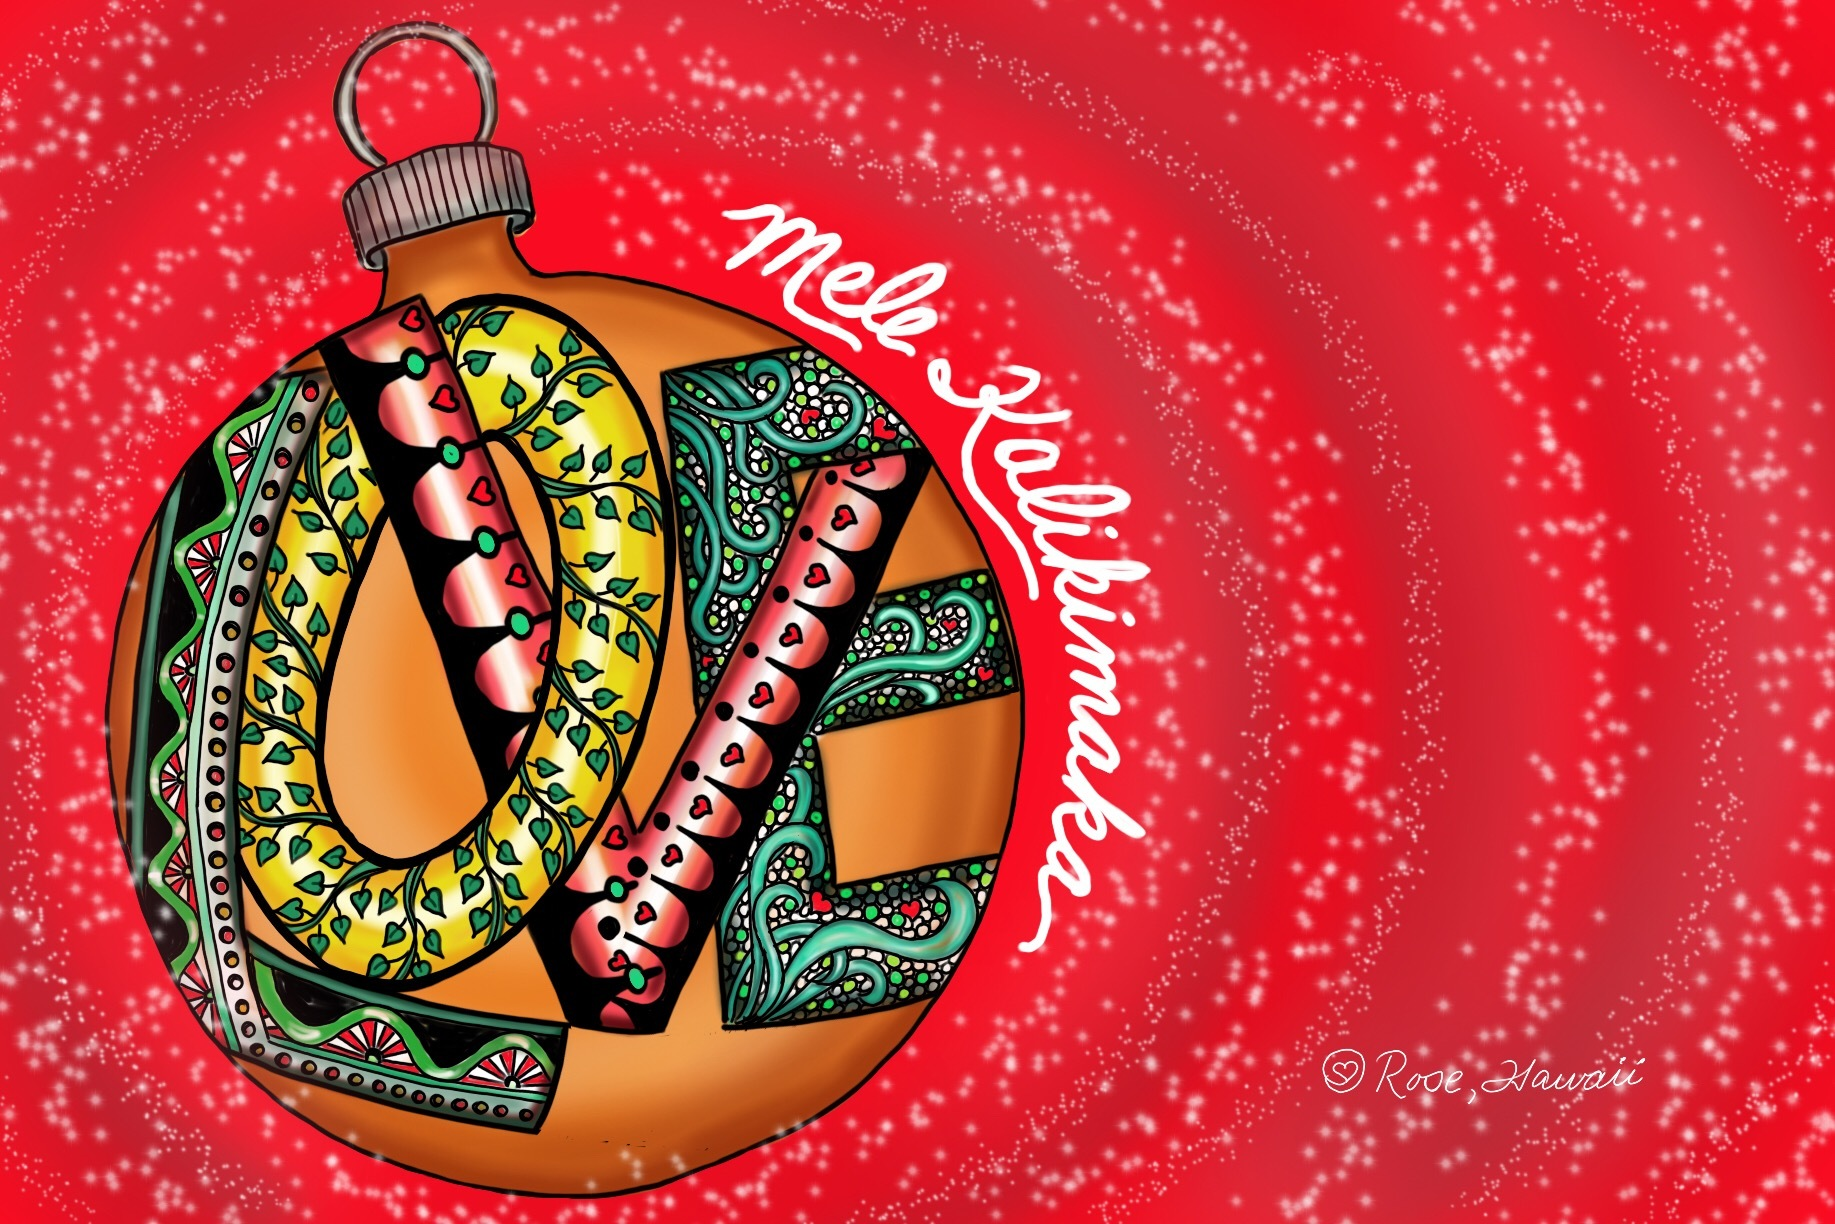 Zentangle Inspired Mele Kalikimaka Love Ornament